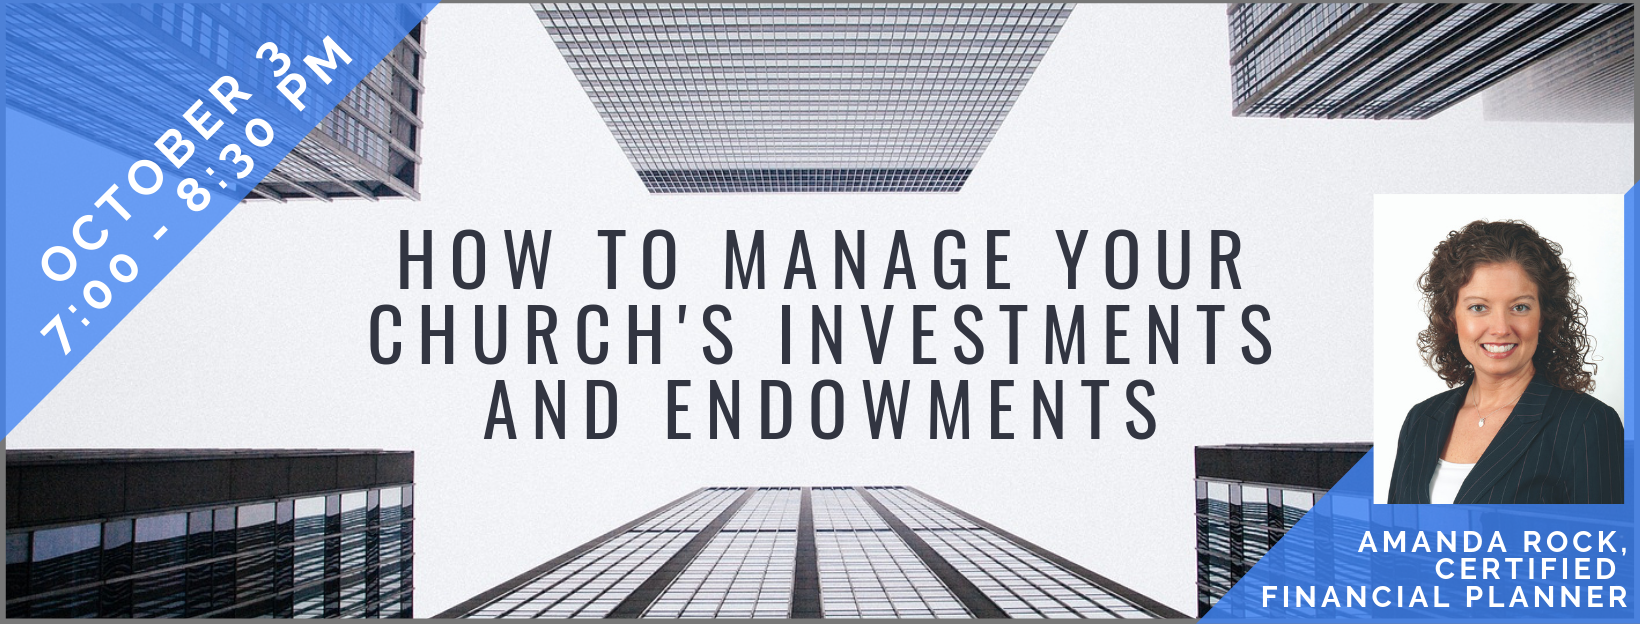 How to Manage Your Church's Investments and Endowments